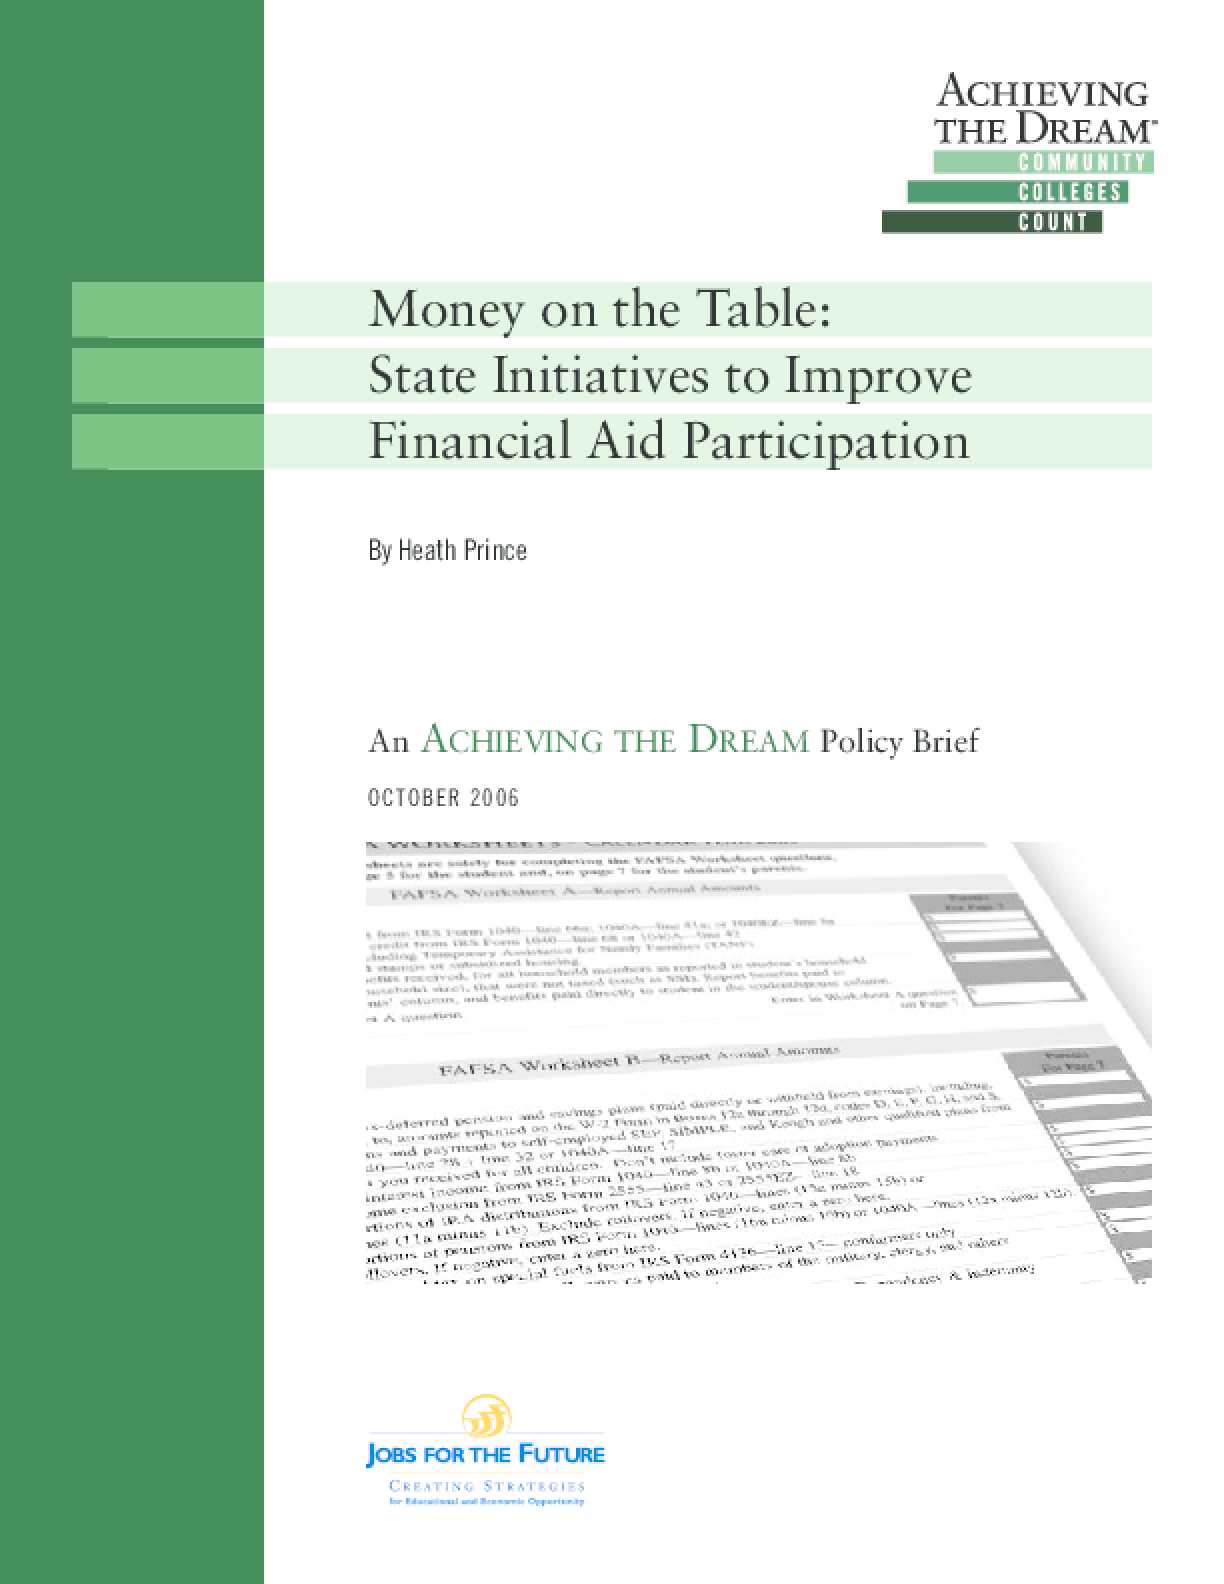 Money on the Table: State Initiatives to Improve Financial Aid Participation